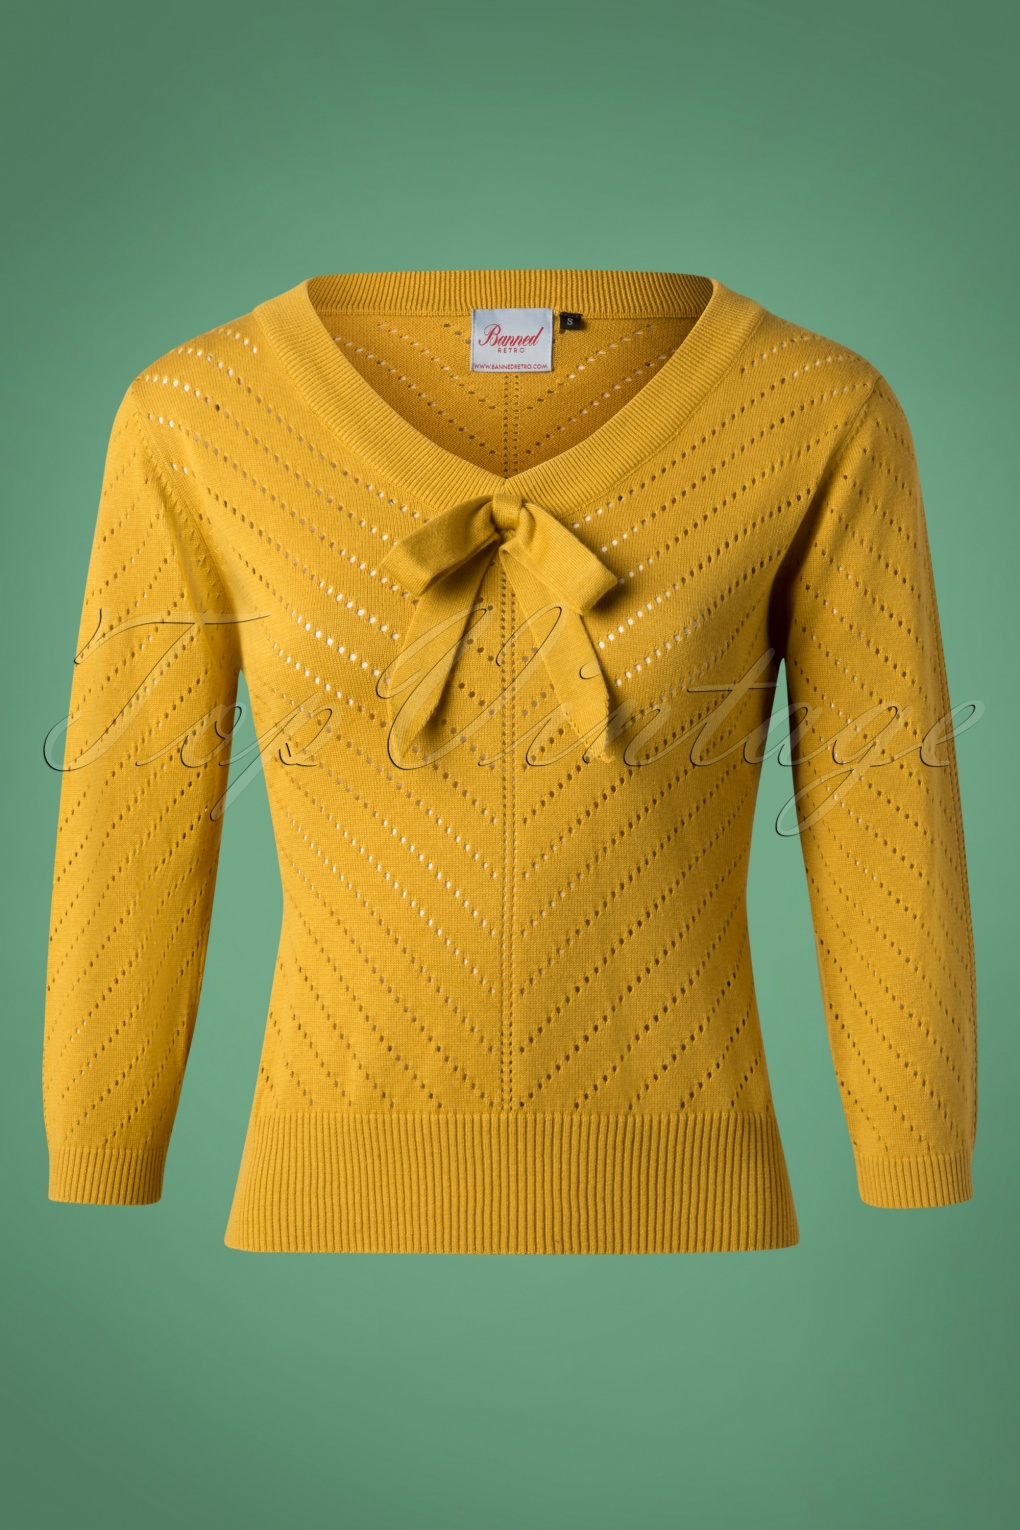 1950s Sweaters, 50s Cardigans, Twin Sweater Sets 50s Charlie Chevron Top in Mustard £32.47 AT vintagedancer.com